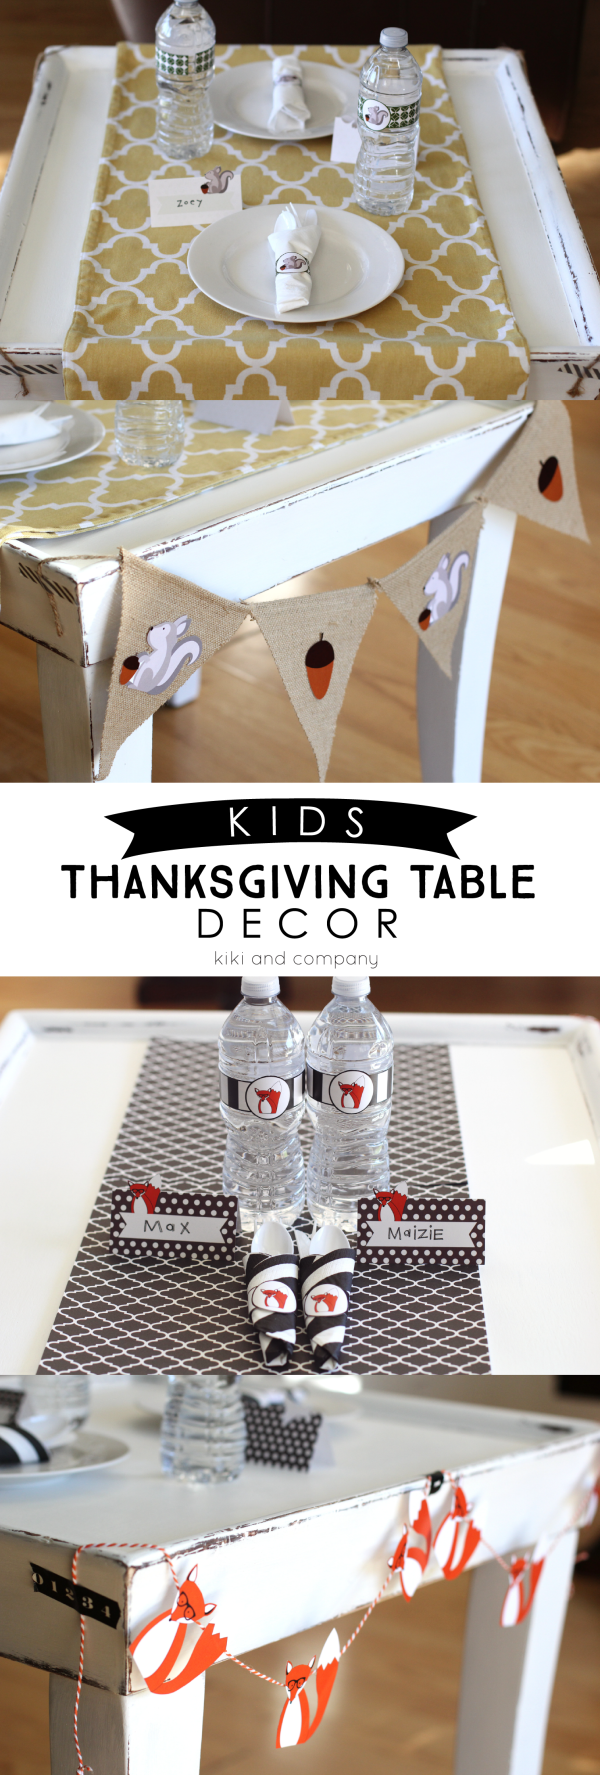 Kids Thanksgiving Table Decor  from kiki and company